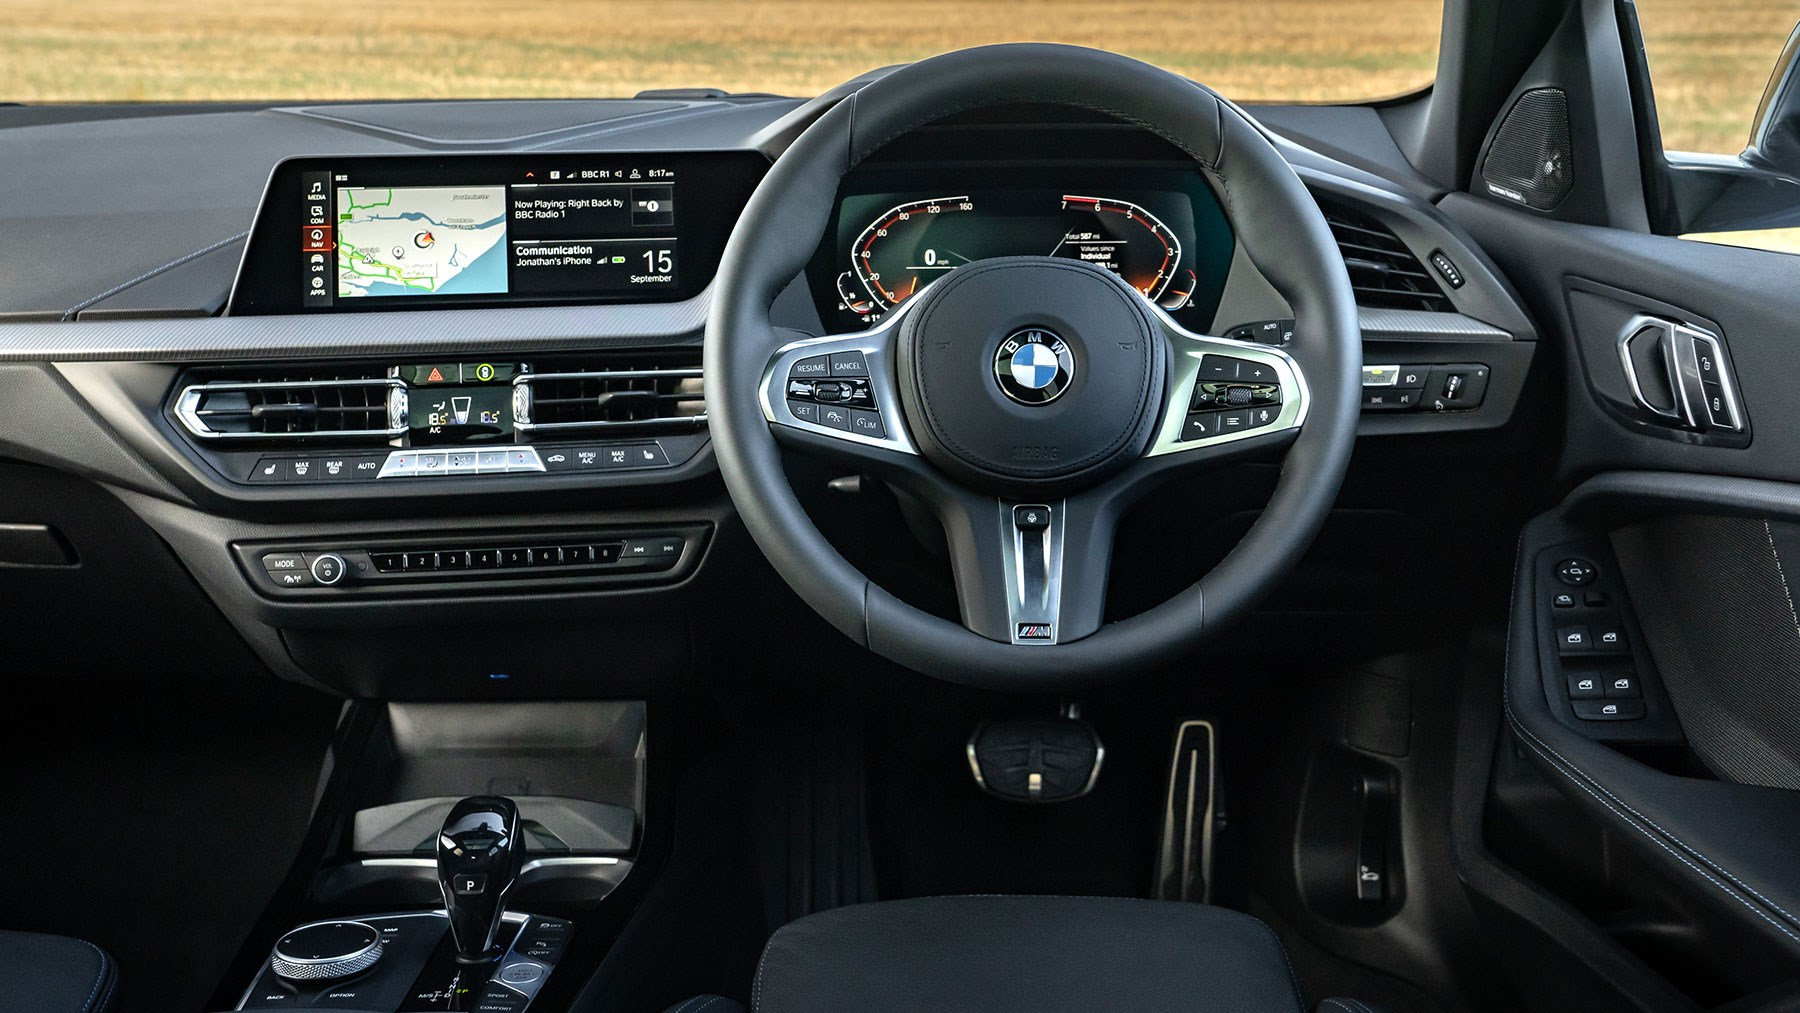 BMW 1-series interior: right-hand drive cabin